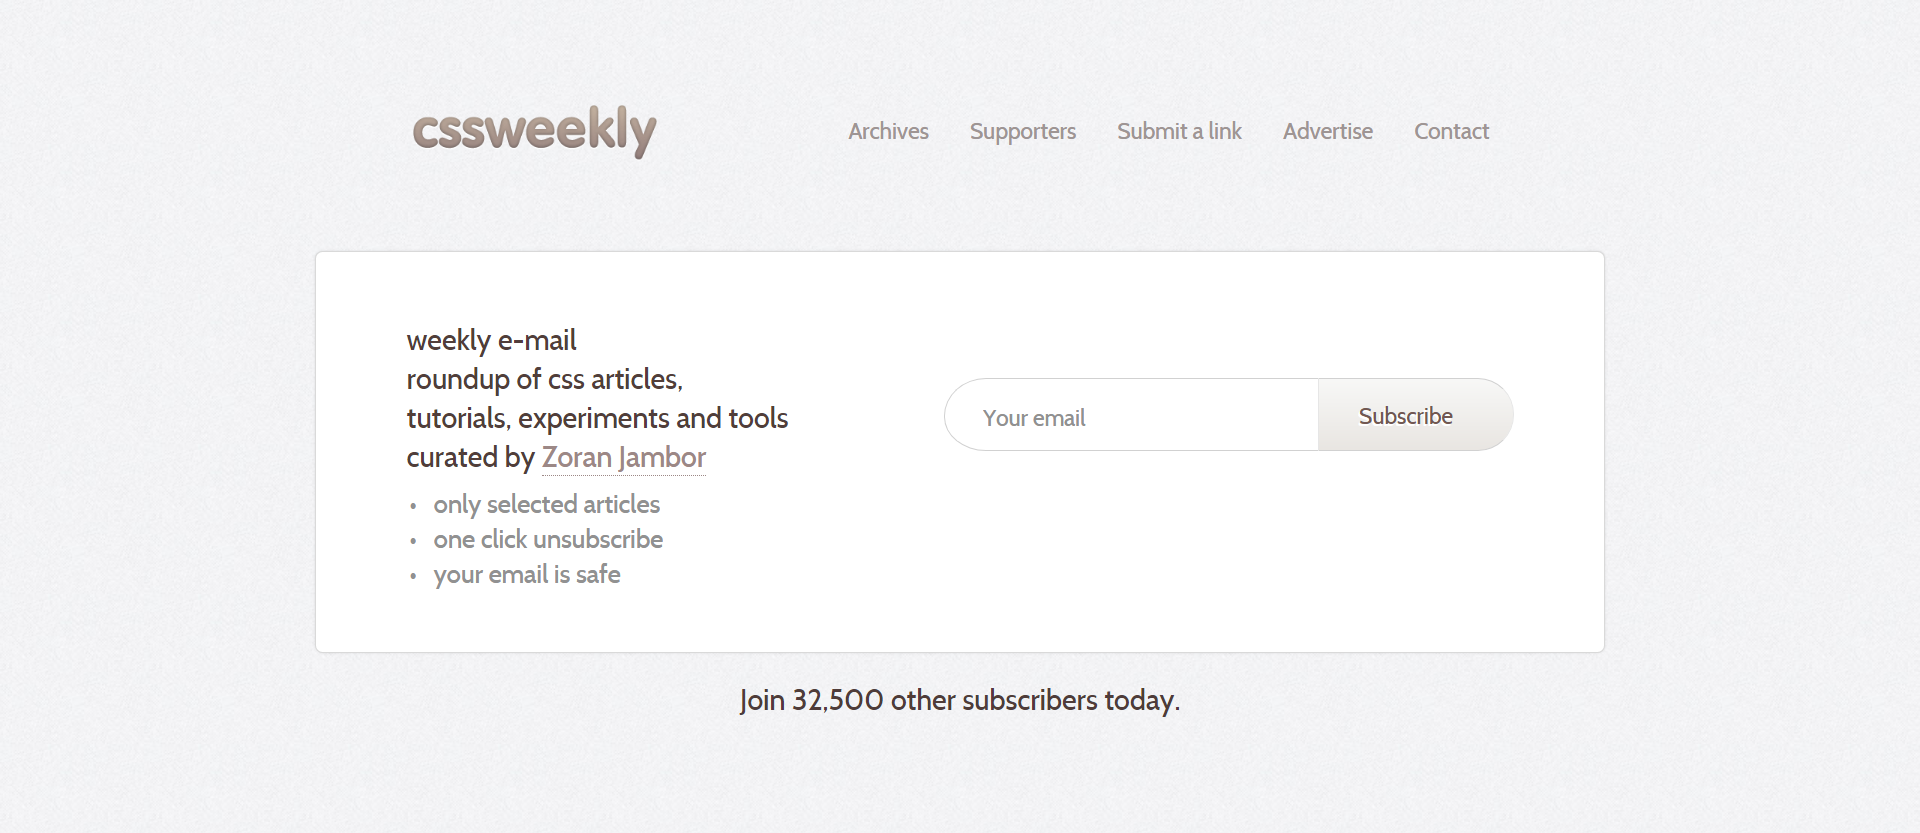 cssweekly newsletter signup